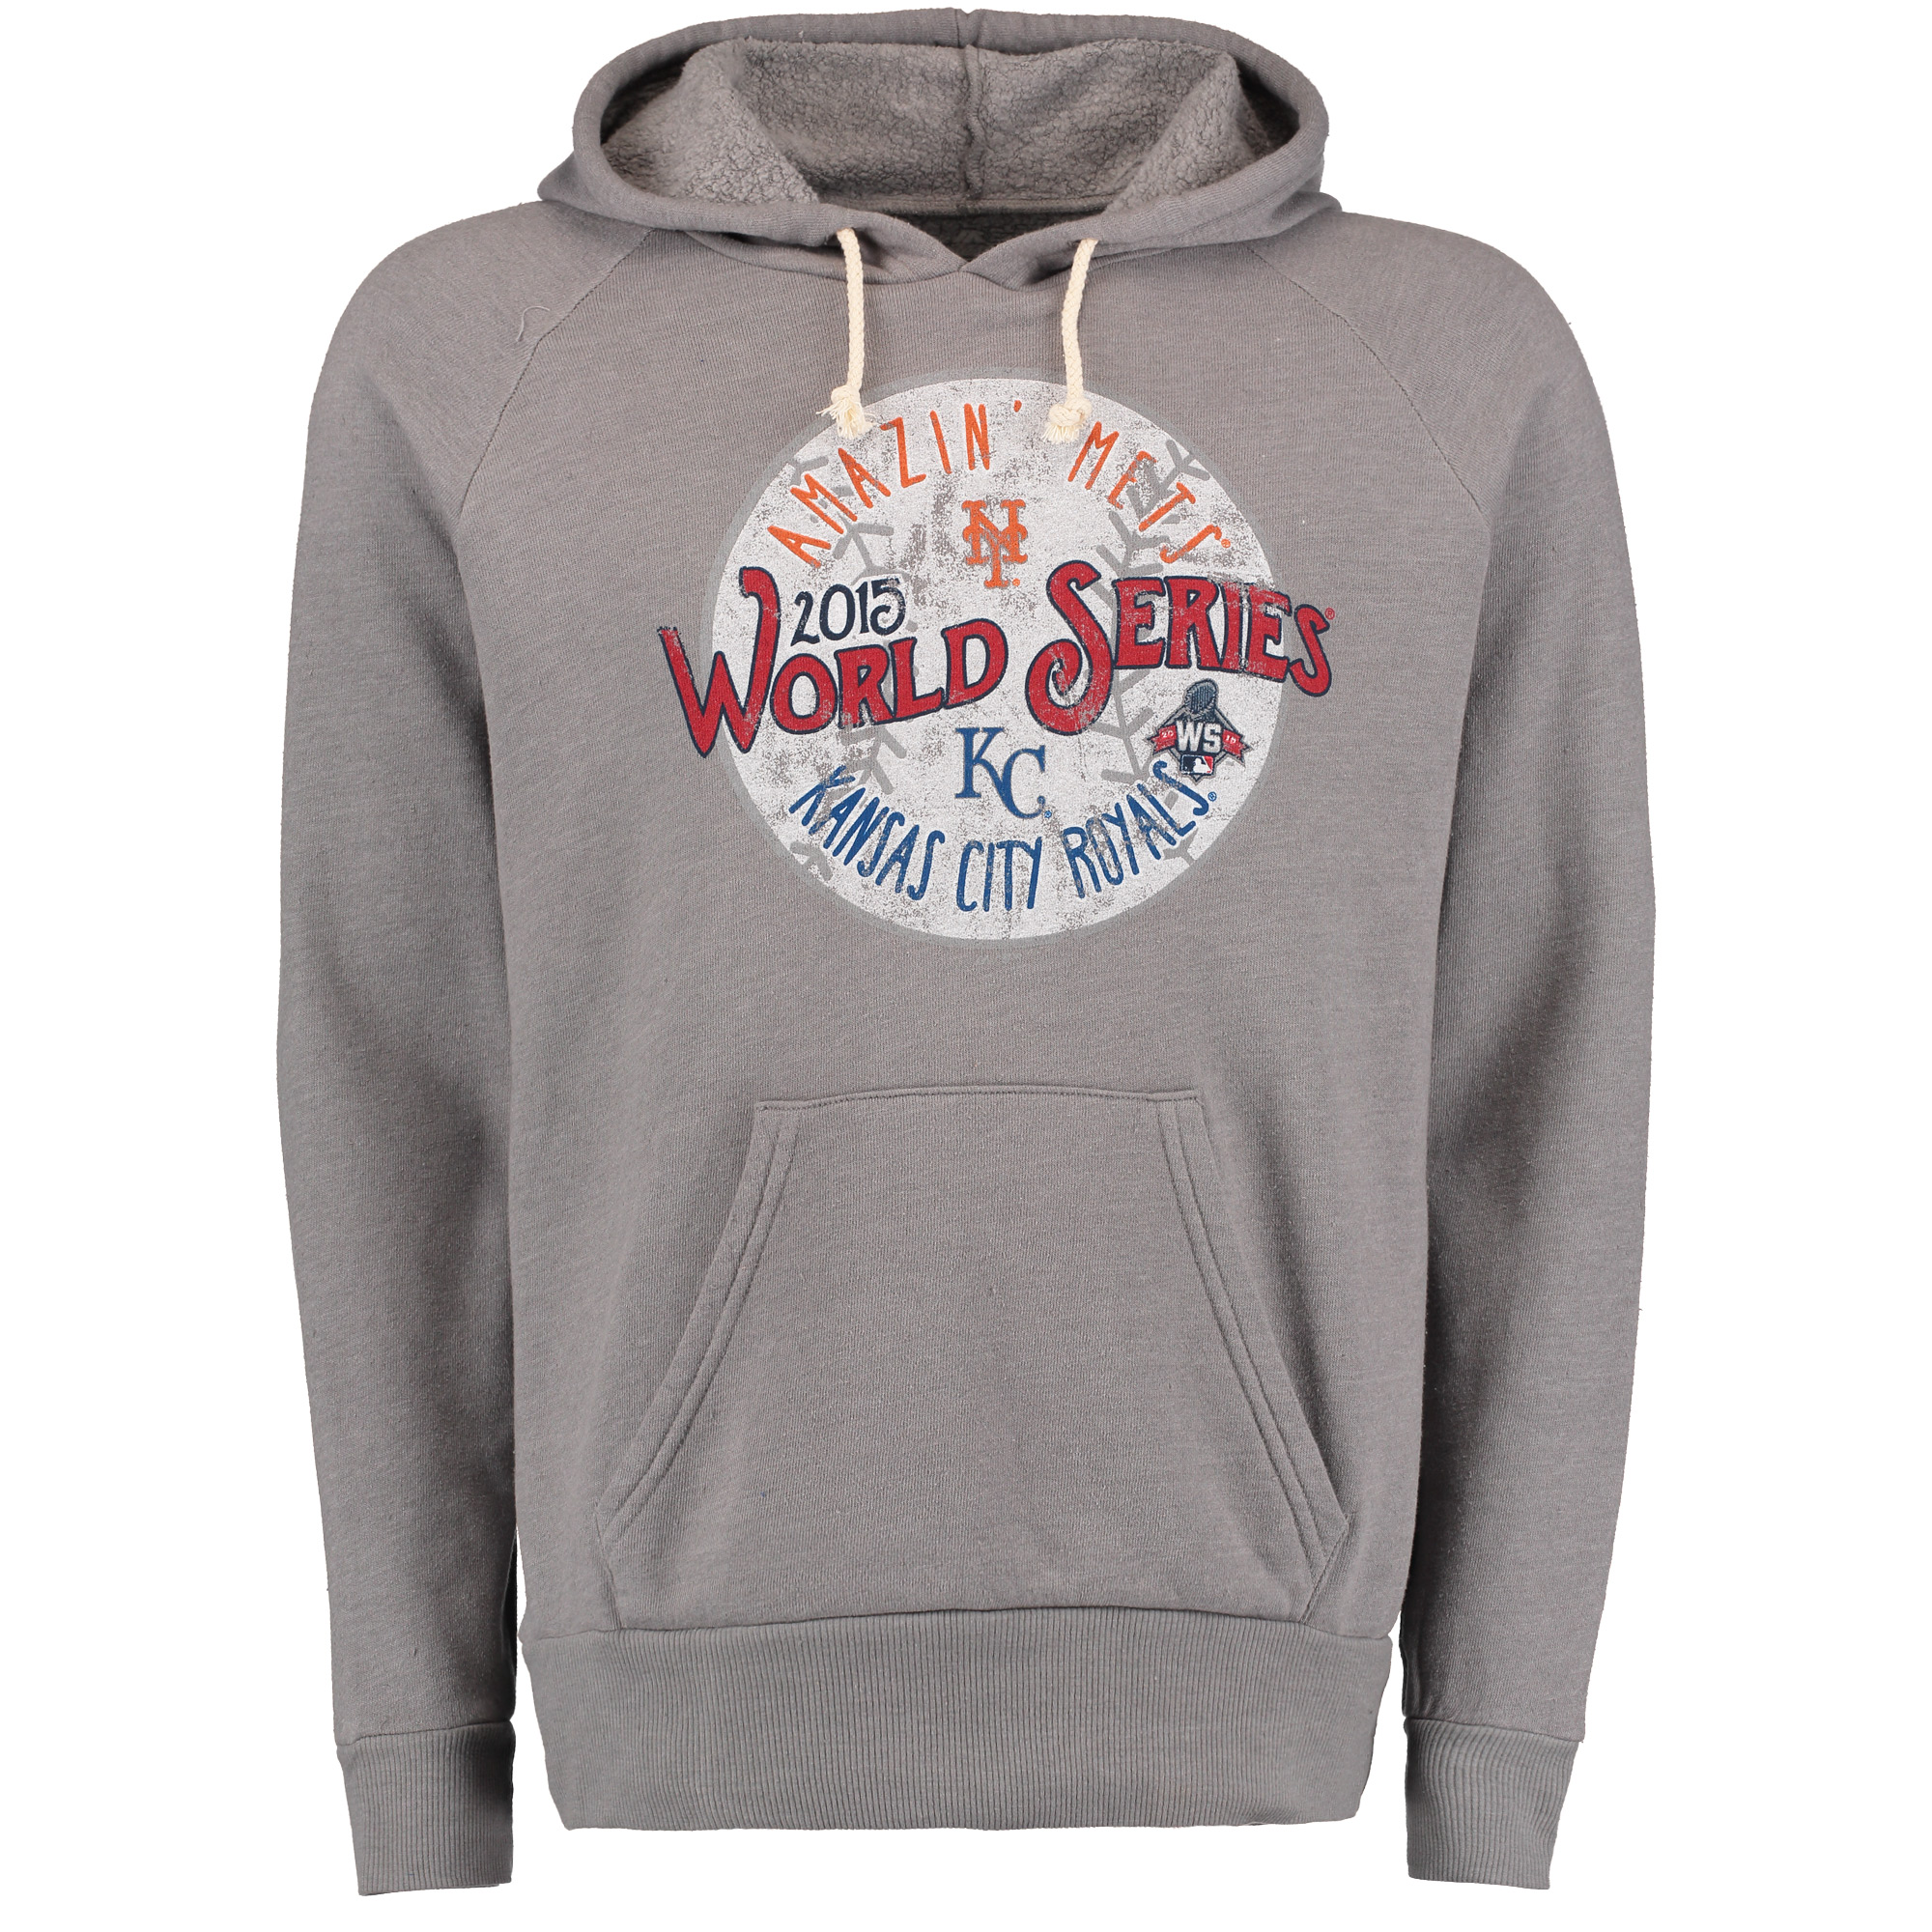 Men's Majestic Threads Gray New York Mets vs. Kansas City Royals 2015 World Series Bound Dueling Pullover Hoodie